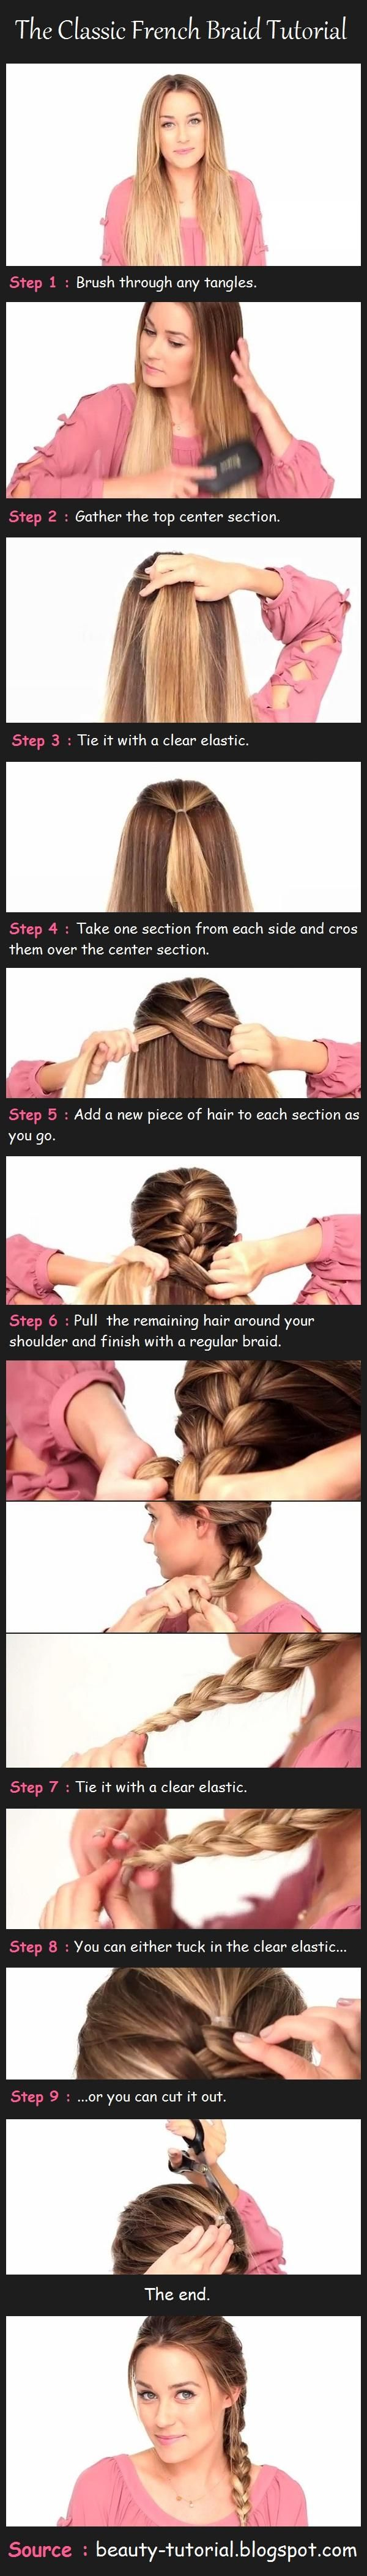 Doing a french braid on yourself - It's all about using a clear plastic hair tie!